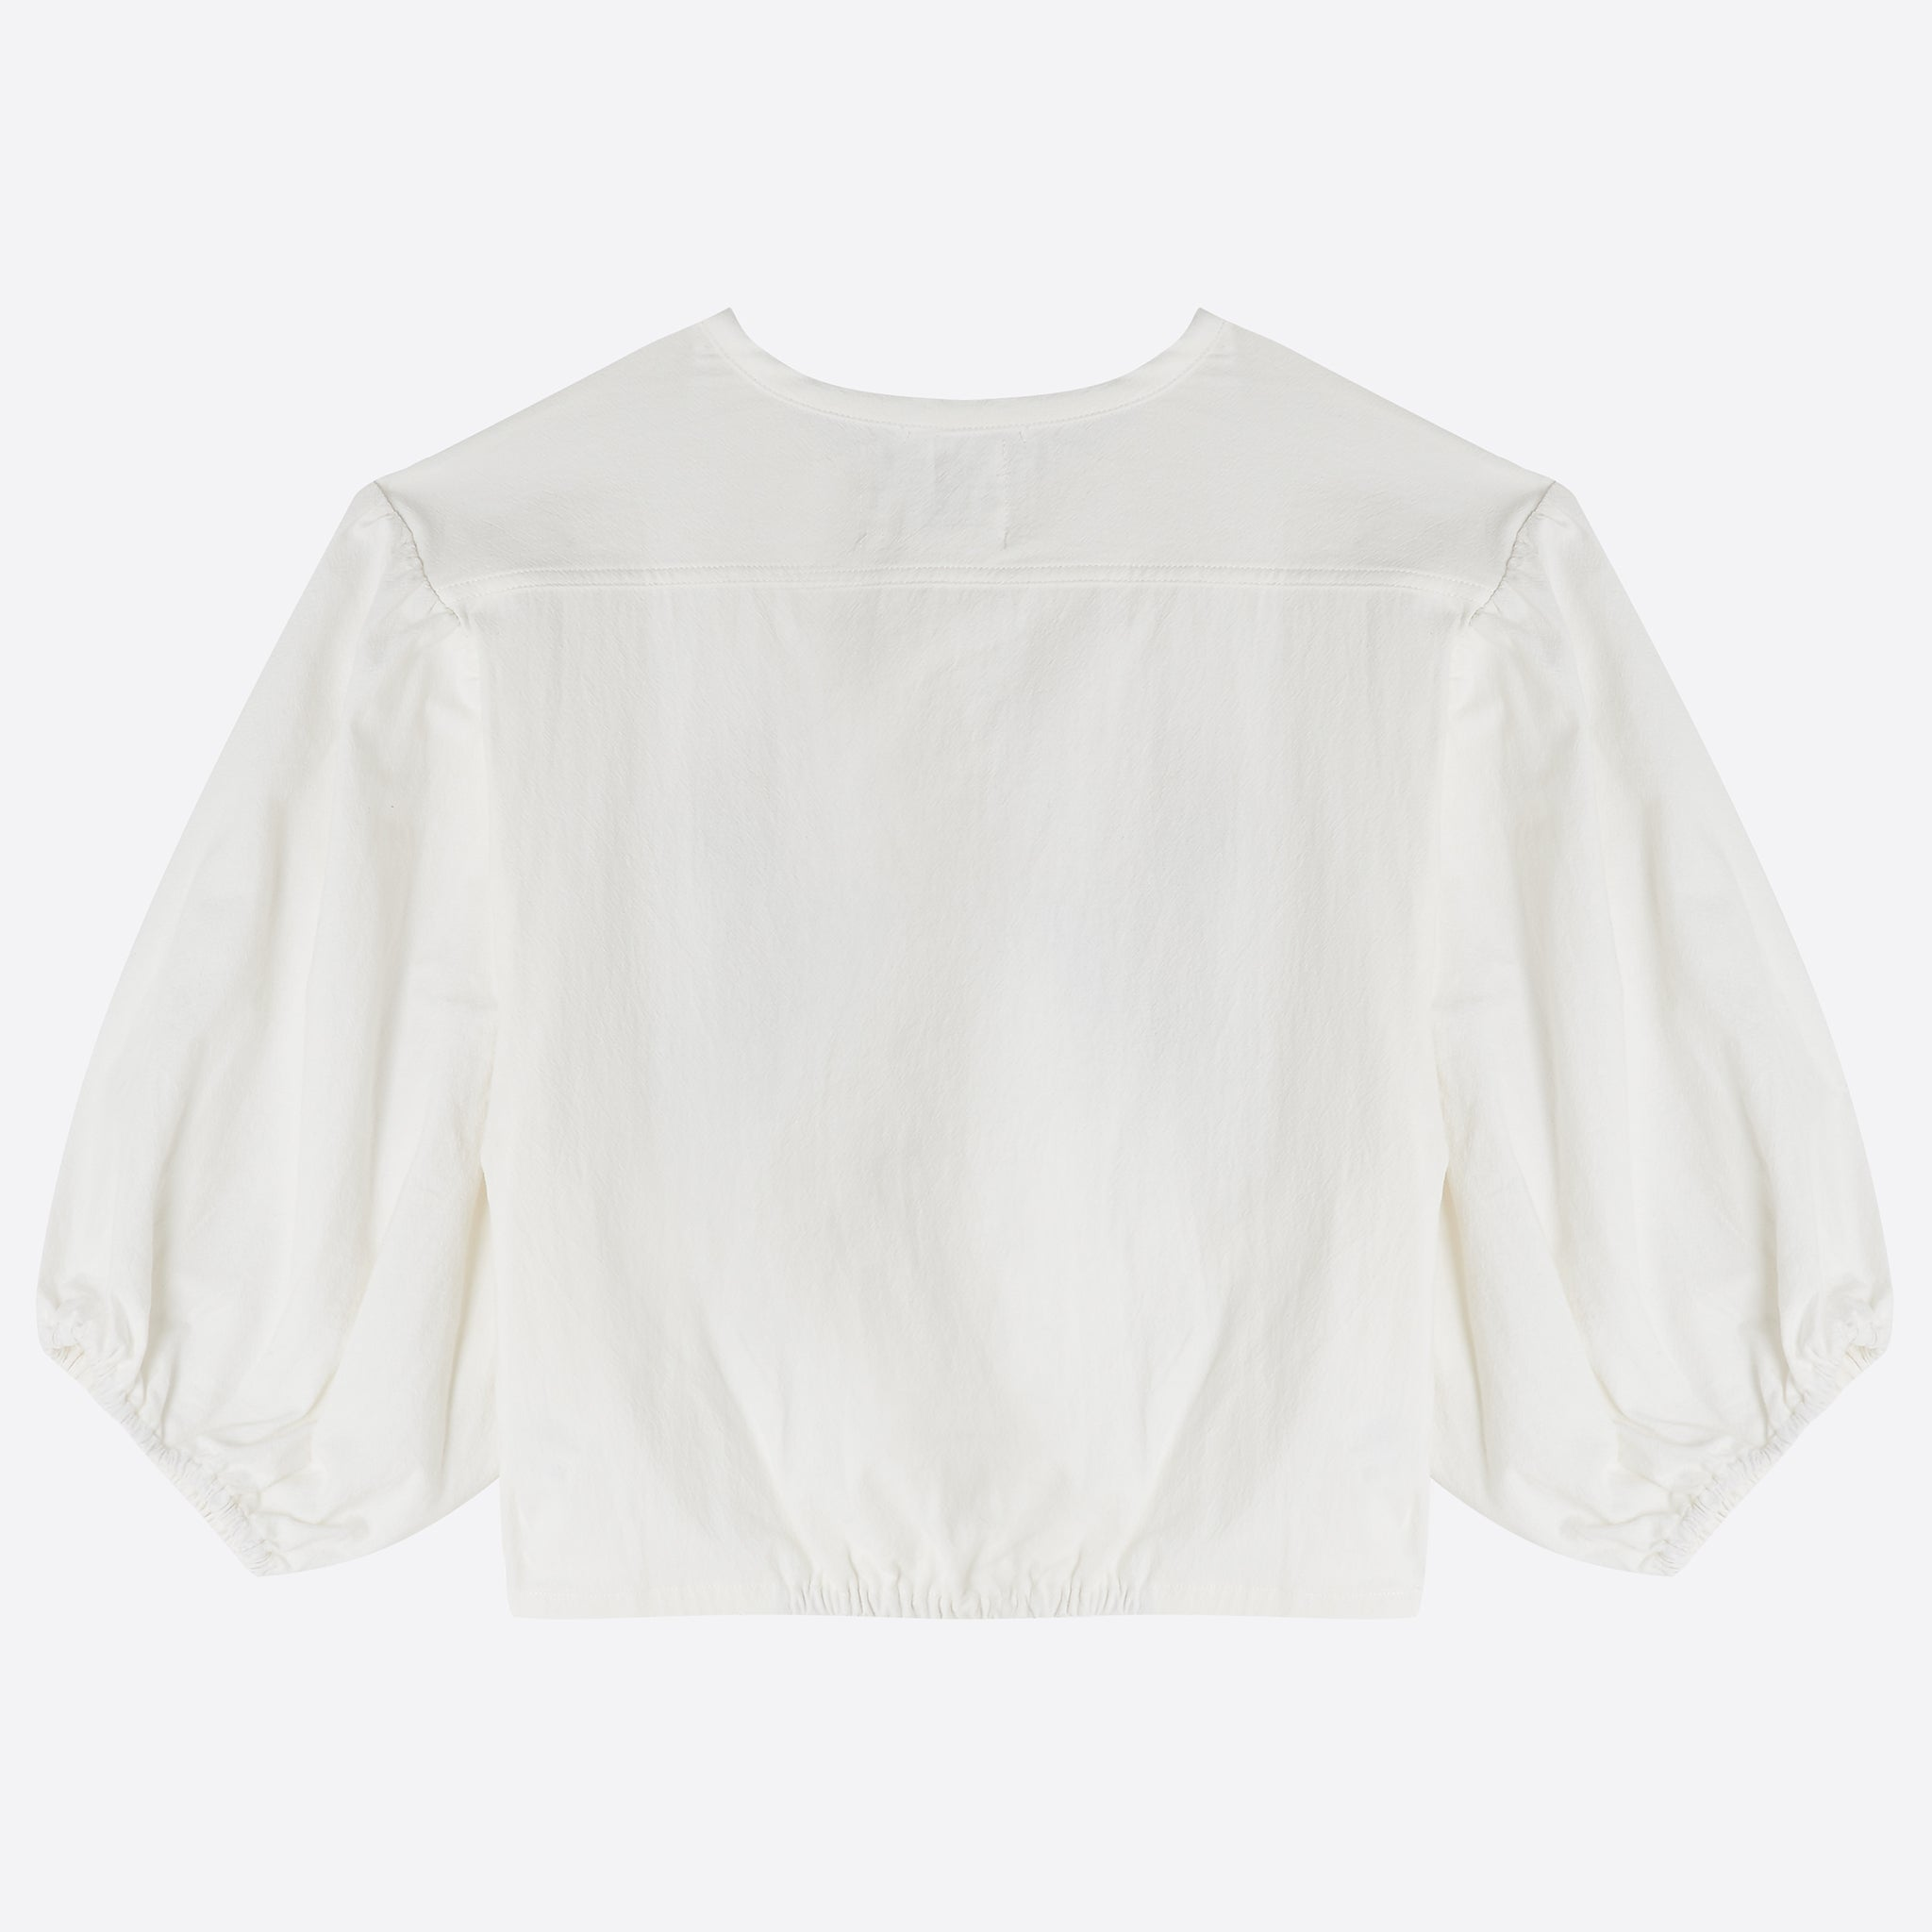 Meadows Myos Shirt in Off White